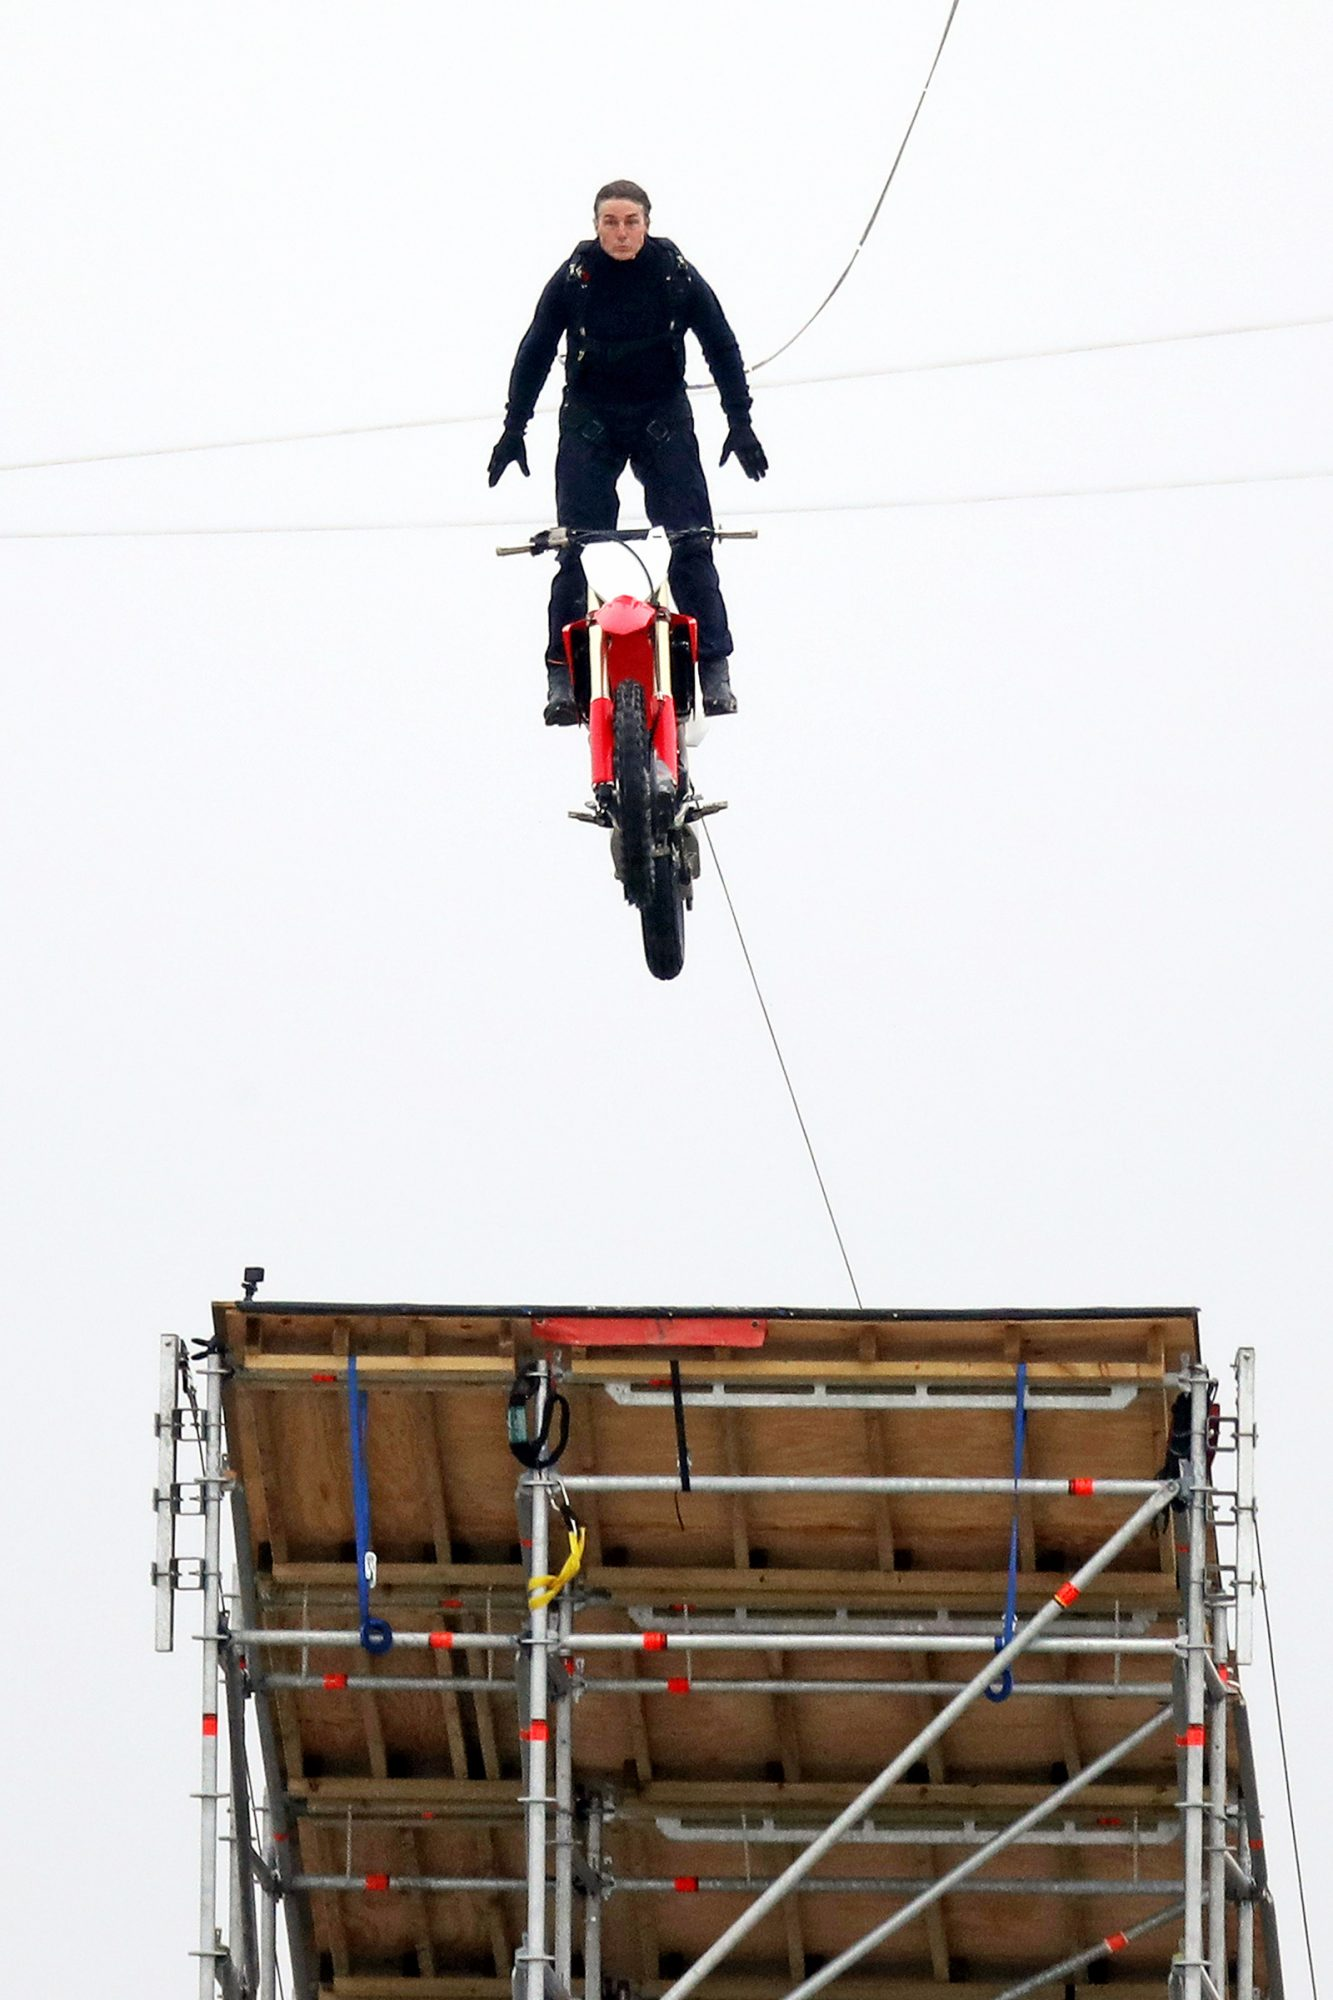 Tom Cruise Films Incredible Daredevil Stunt For Mission Impossible 7 In The Oxfordshire countryside